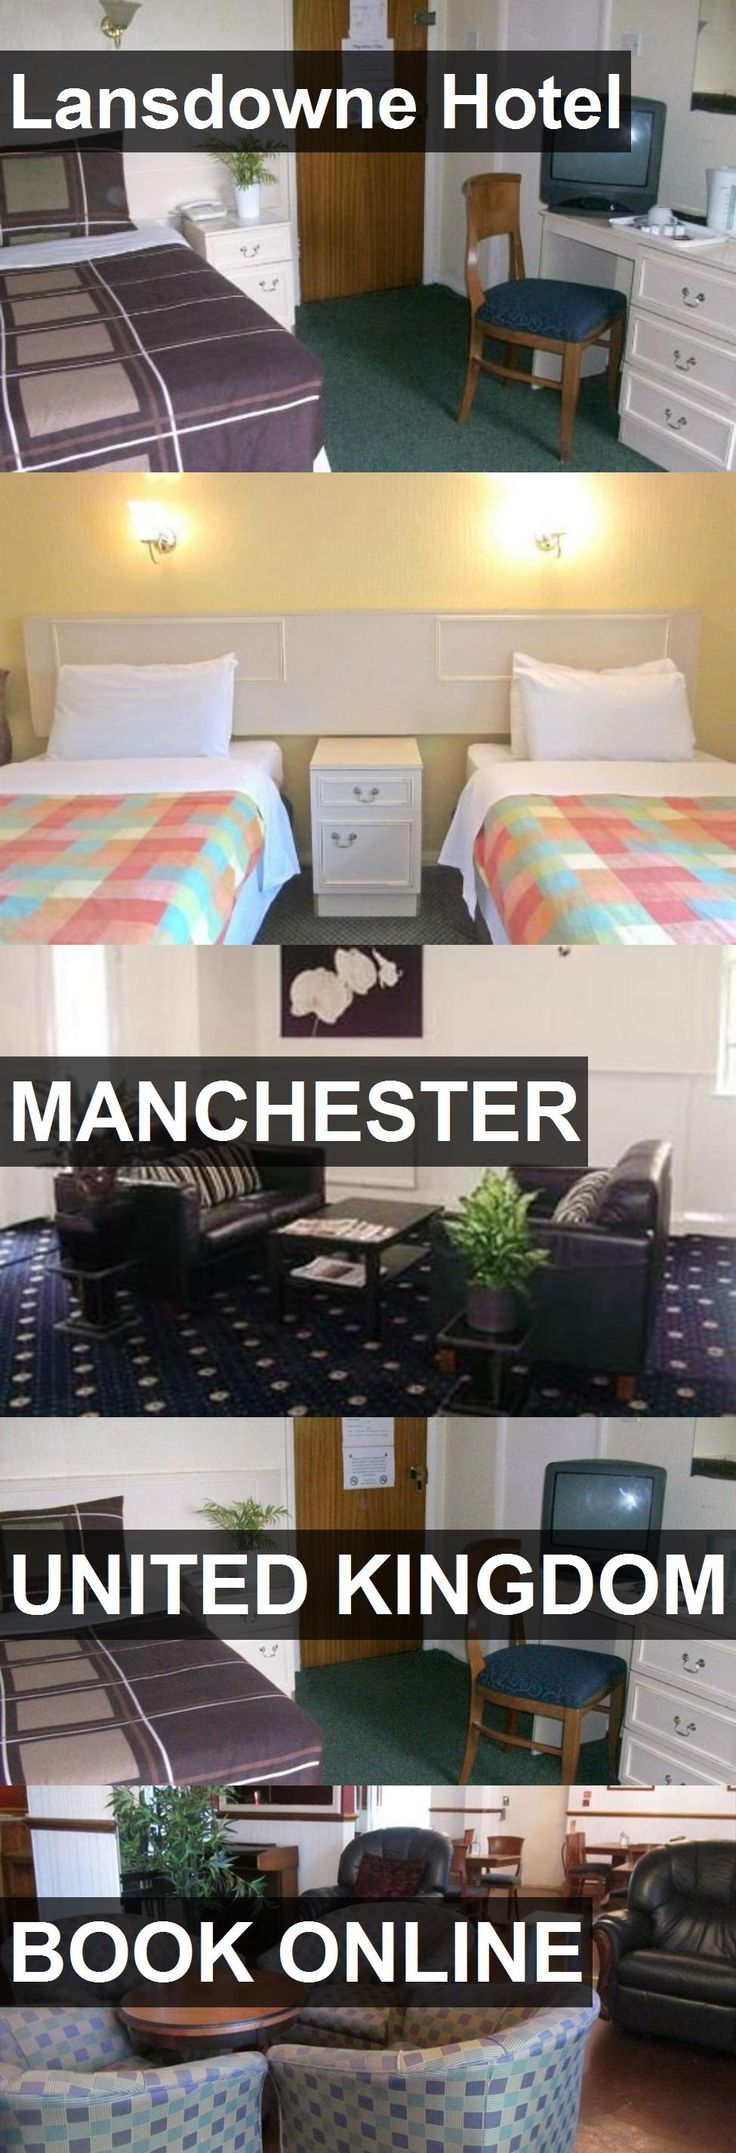 Lansdowne Hotel in Manchester, United Kingdom. For more information, photos, reviews and best prices please follow the link. #UnitedKingdom #Manchester #travel #vacation #hotel